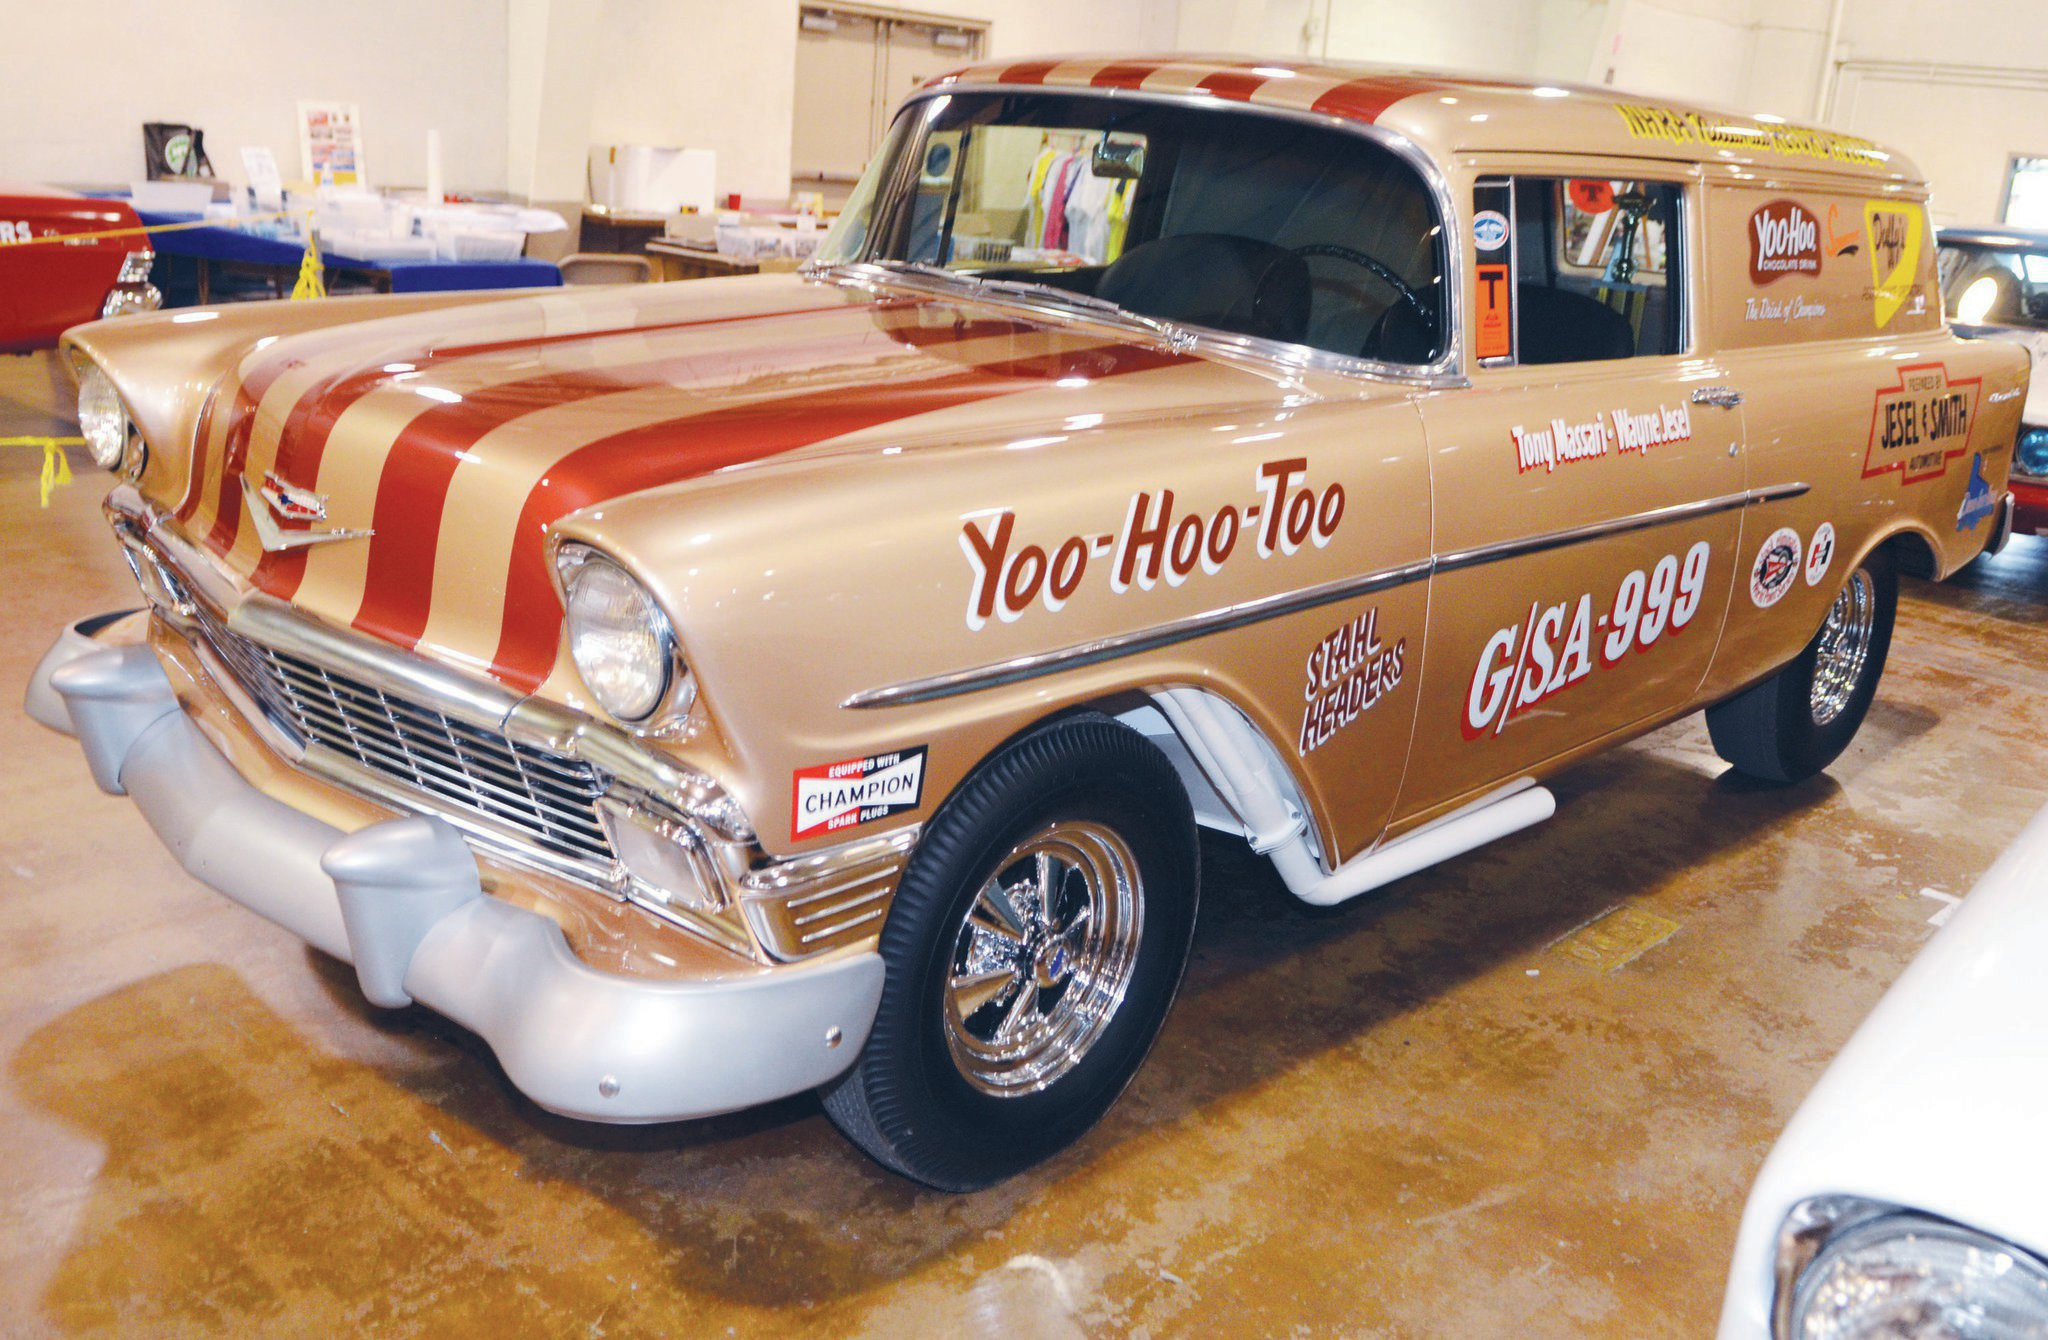 Wayne Jesel put in the hours and effort to have his Yoo Hoo Too tribute to the era ready for the event. He didn't get everything done on the vehicle (which he raced with his brother Dan) until just before leaving home. The effort was rewarded by People's Choice honors. The car is one of the most exacting restorations of a Junior Stocker, complete with a 283 V-8 featuring dual WCFB carbs. Wayne also had some of the original trophies on display.